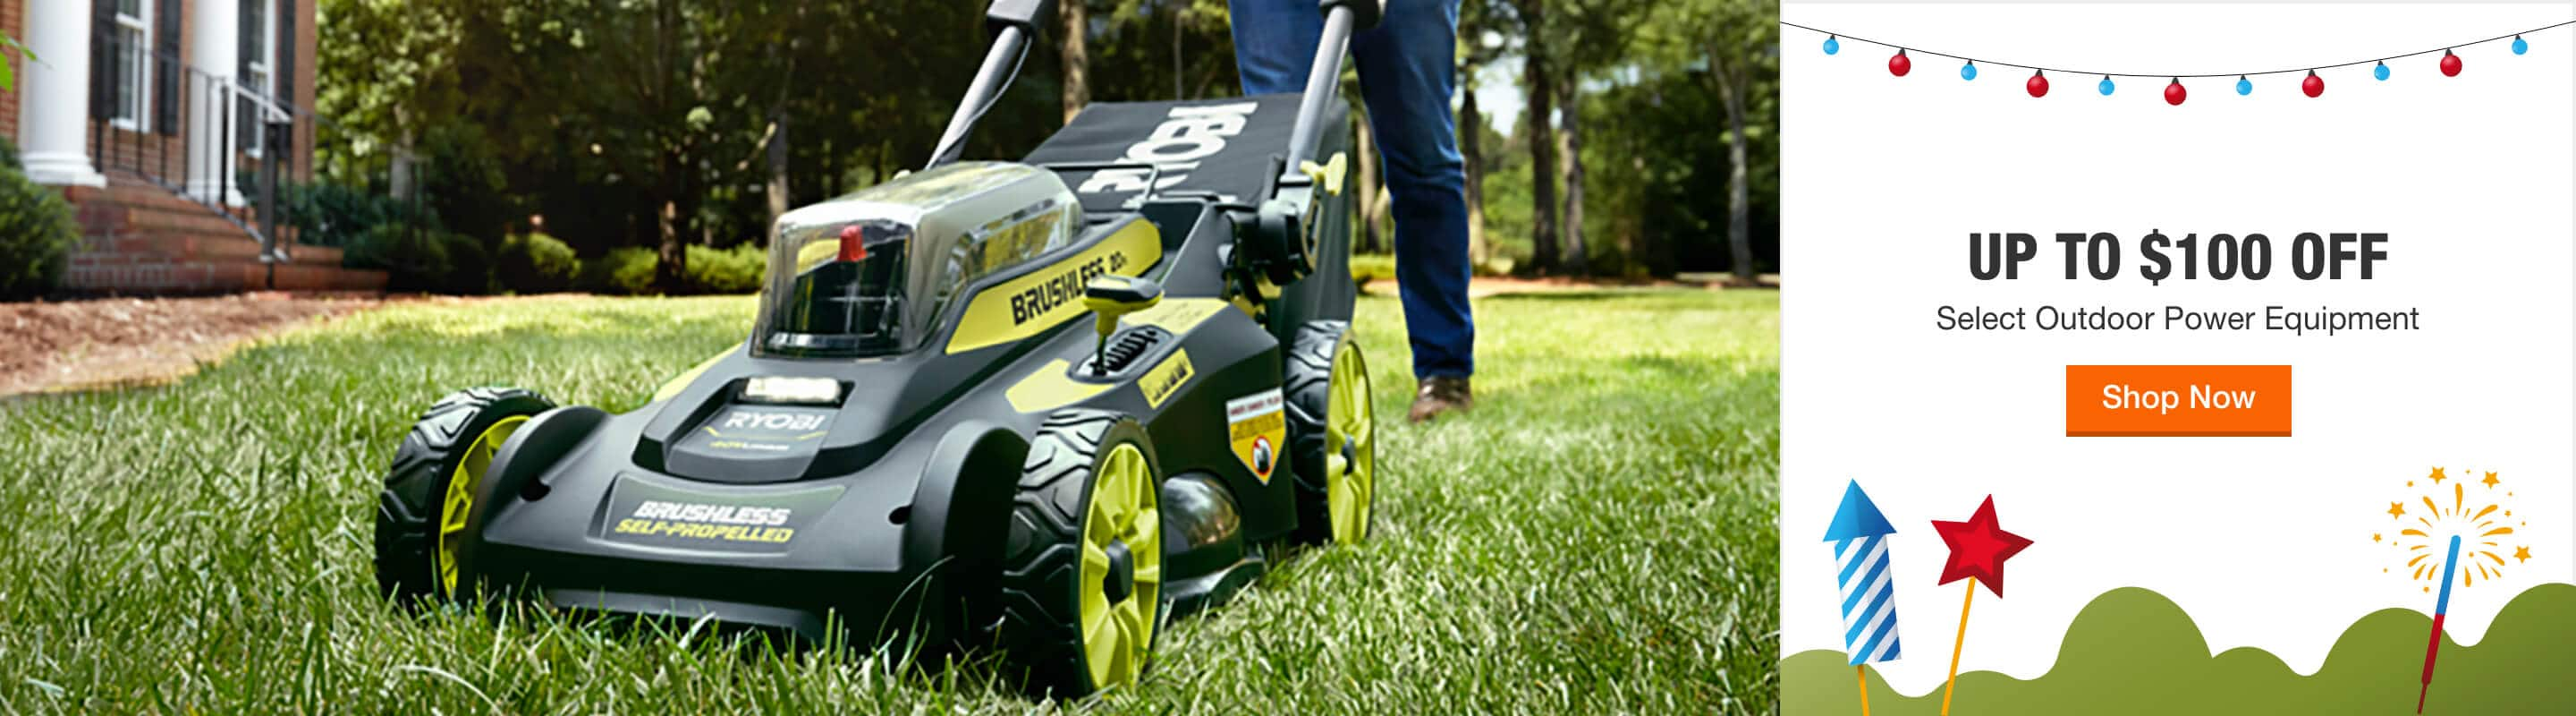 UP TO $100 OFF  Select Outdoor Power Equipment  Shop Now